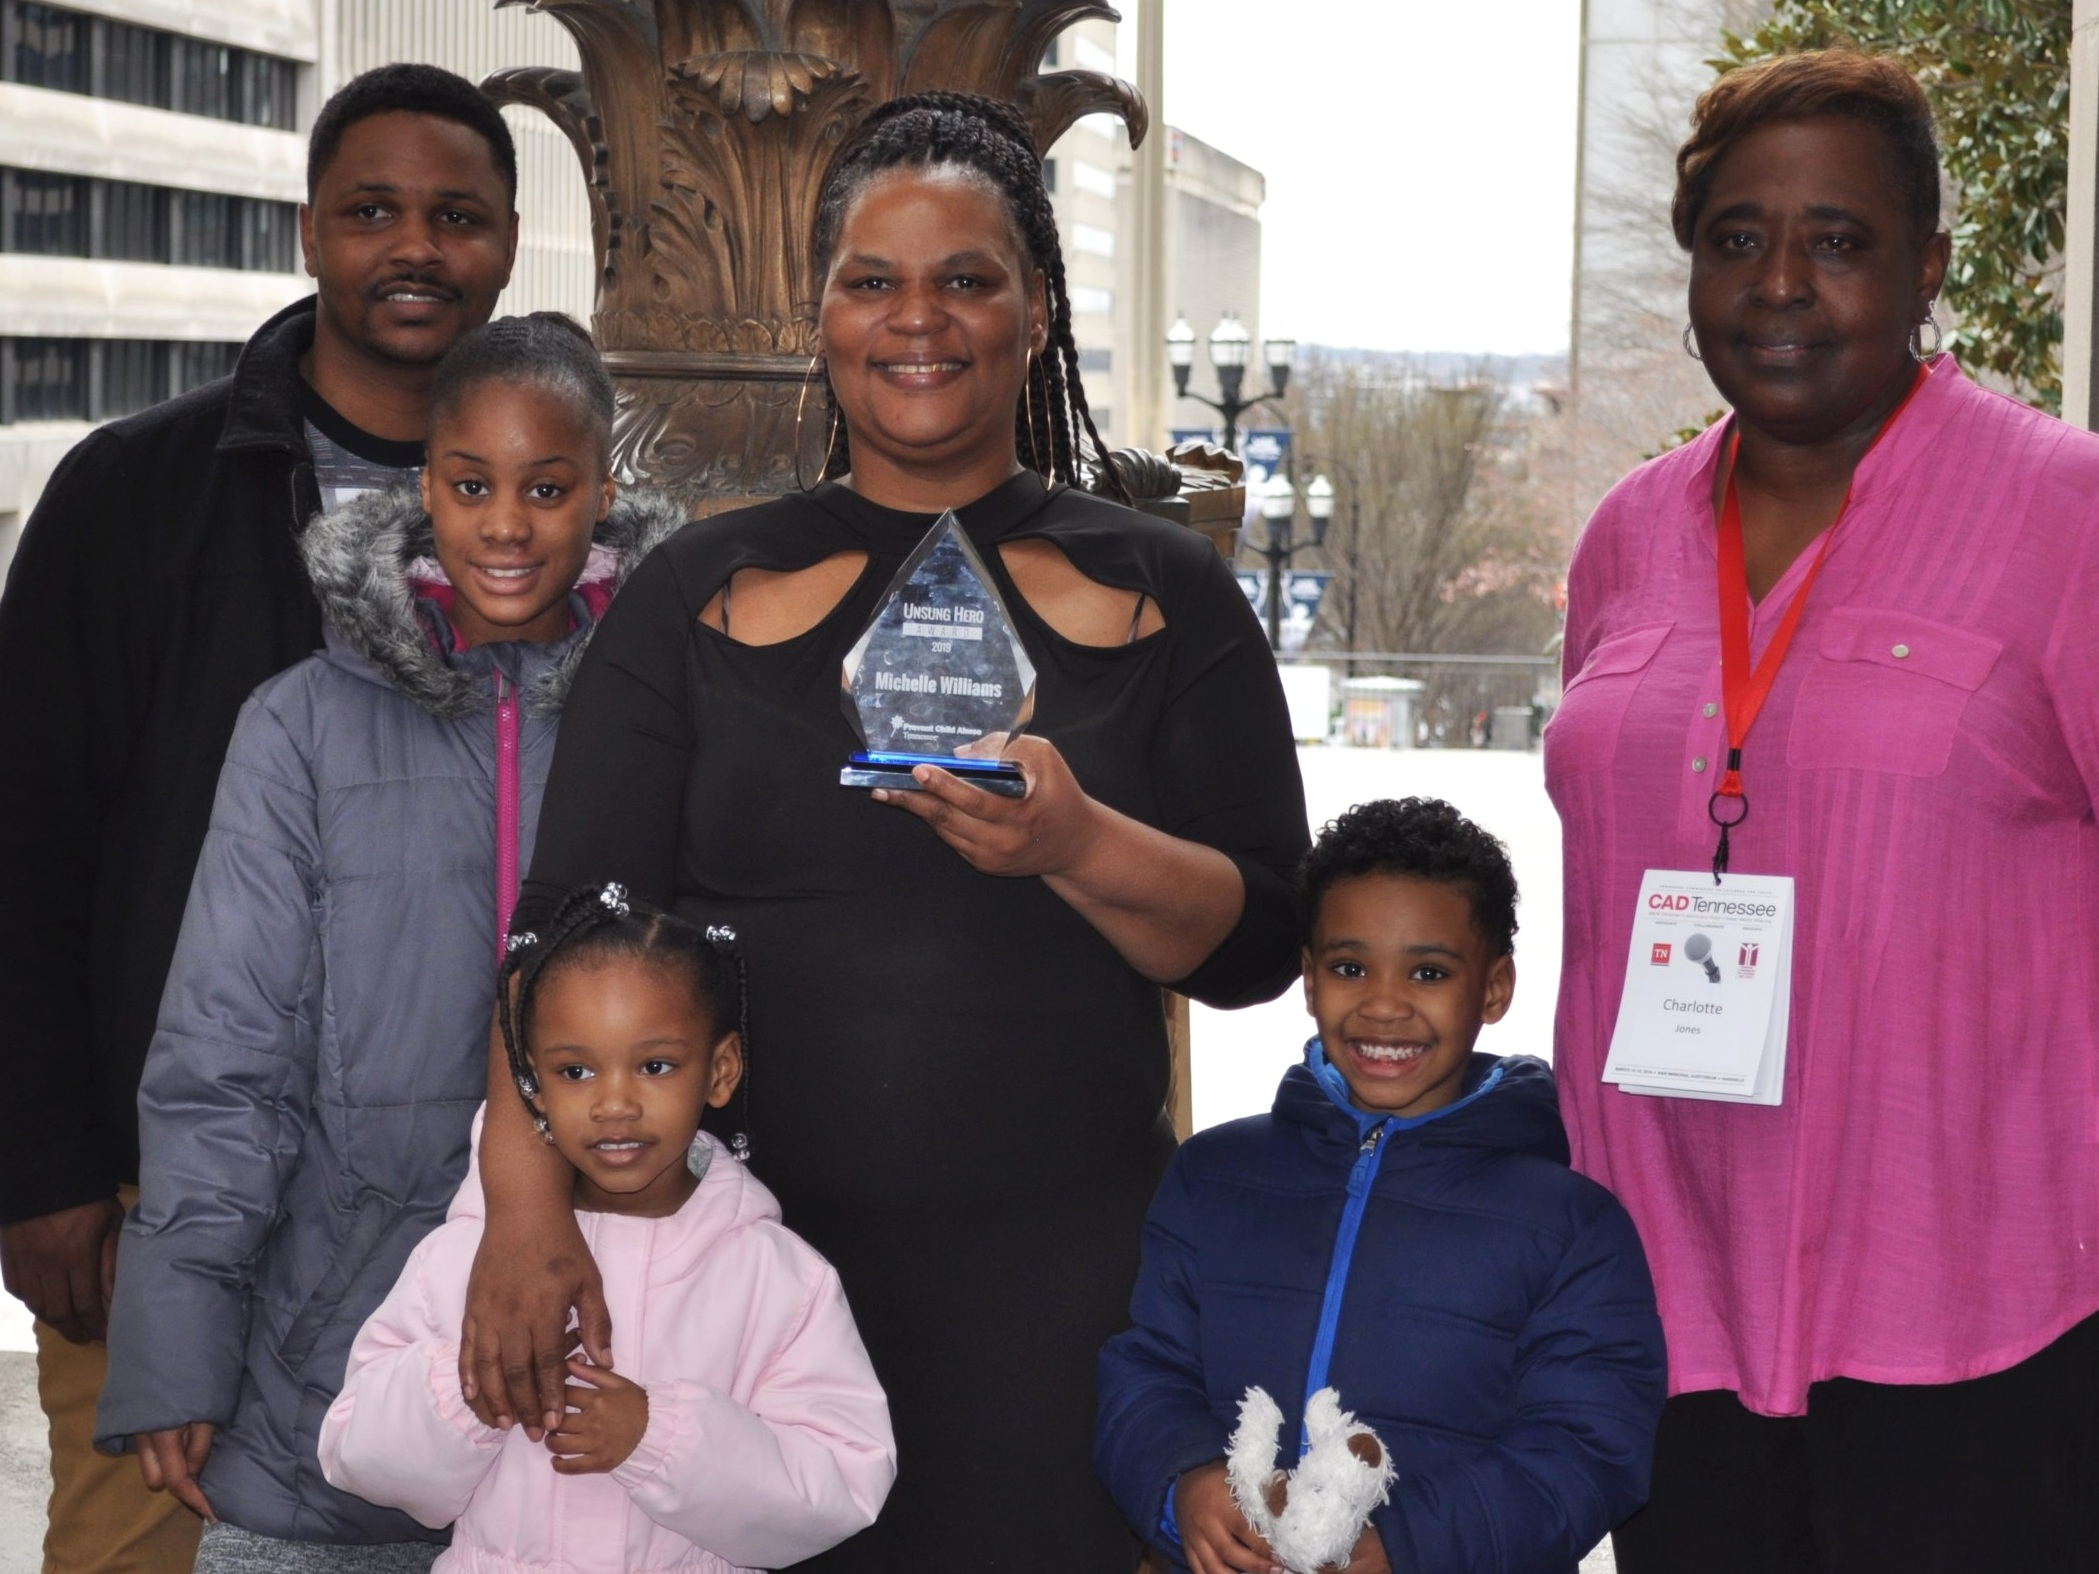 Michelle+Williams+with+her+family+and+a+representative+from+the+Memphis+Child+Advocacy+Center.jpg